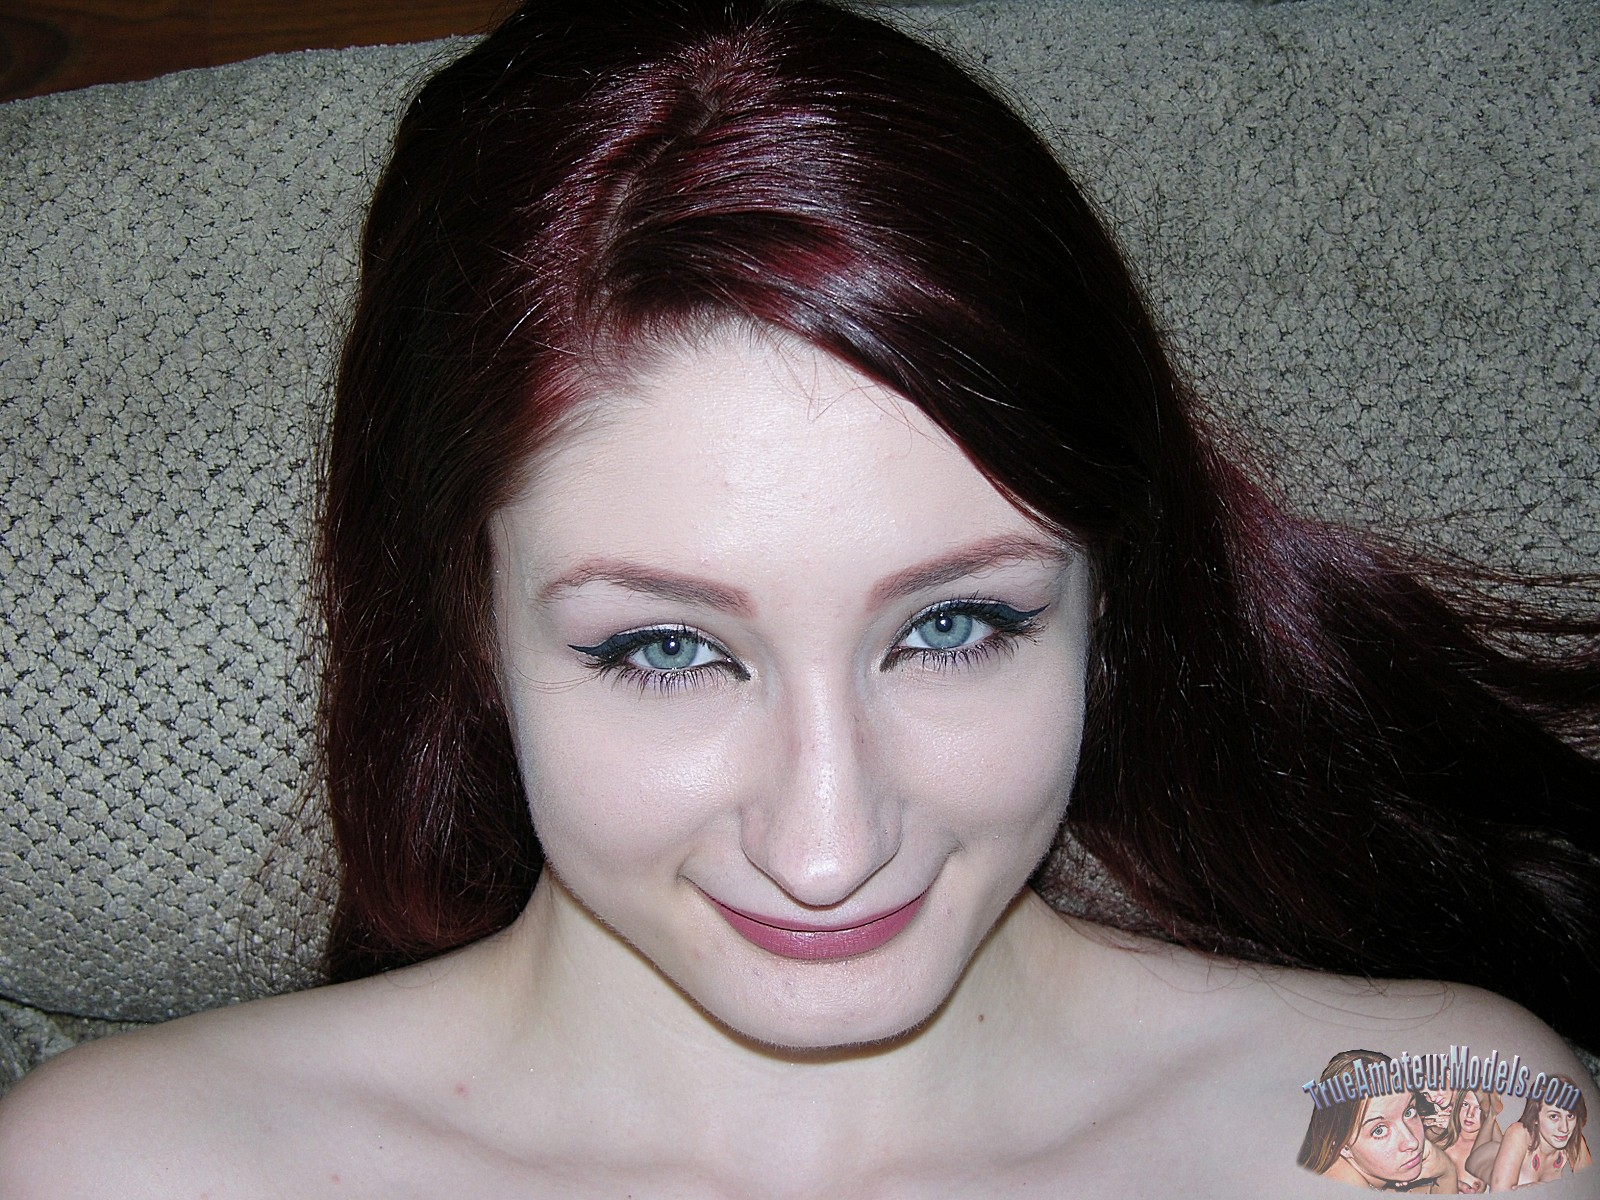 hairy-pussy-redhead-violet-model19